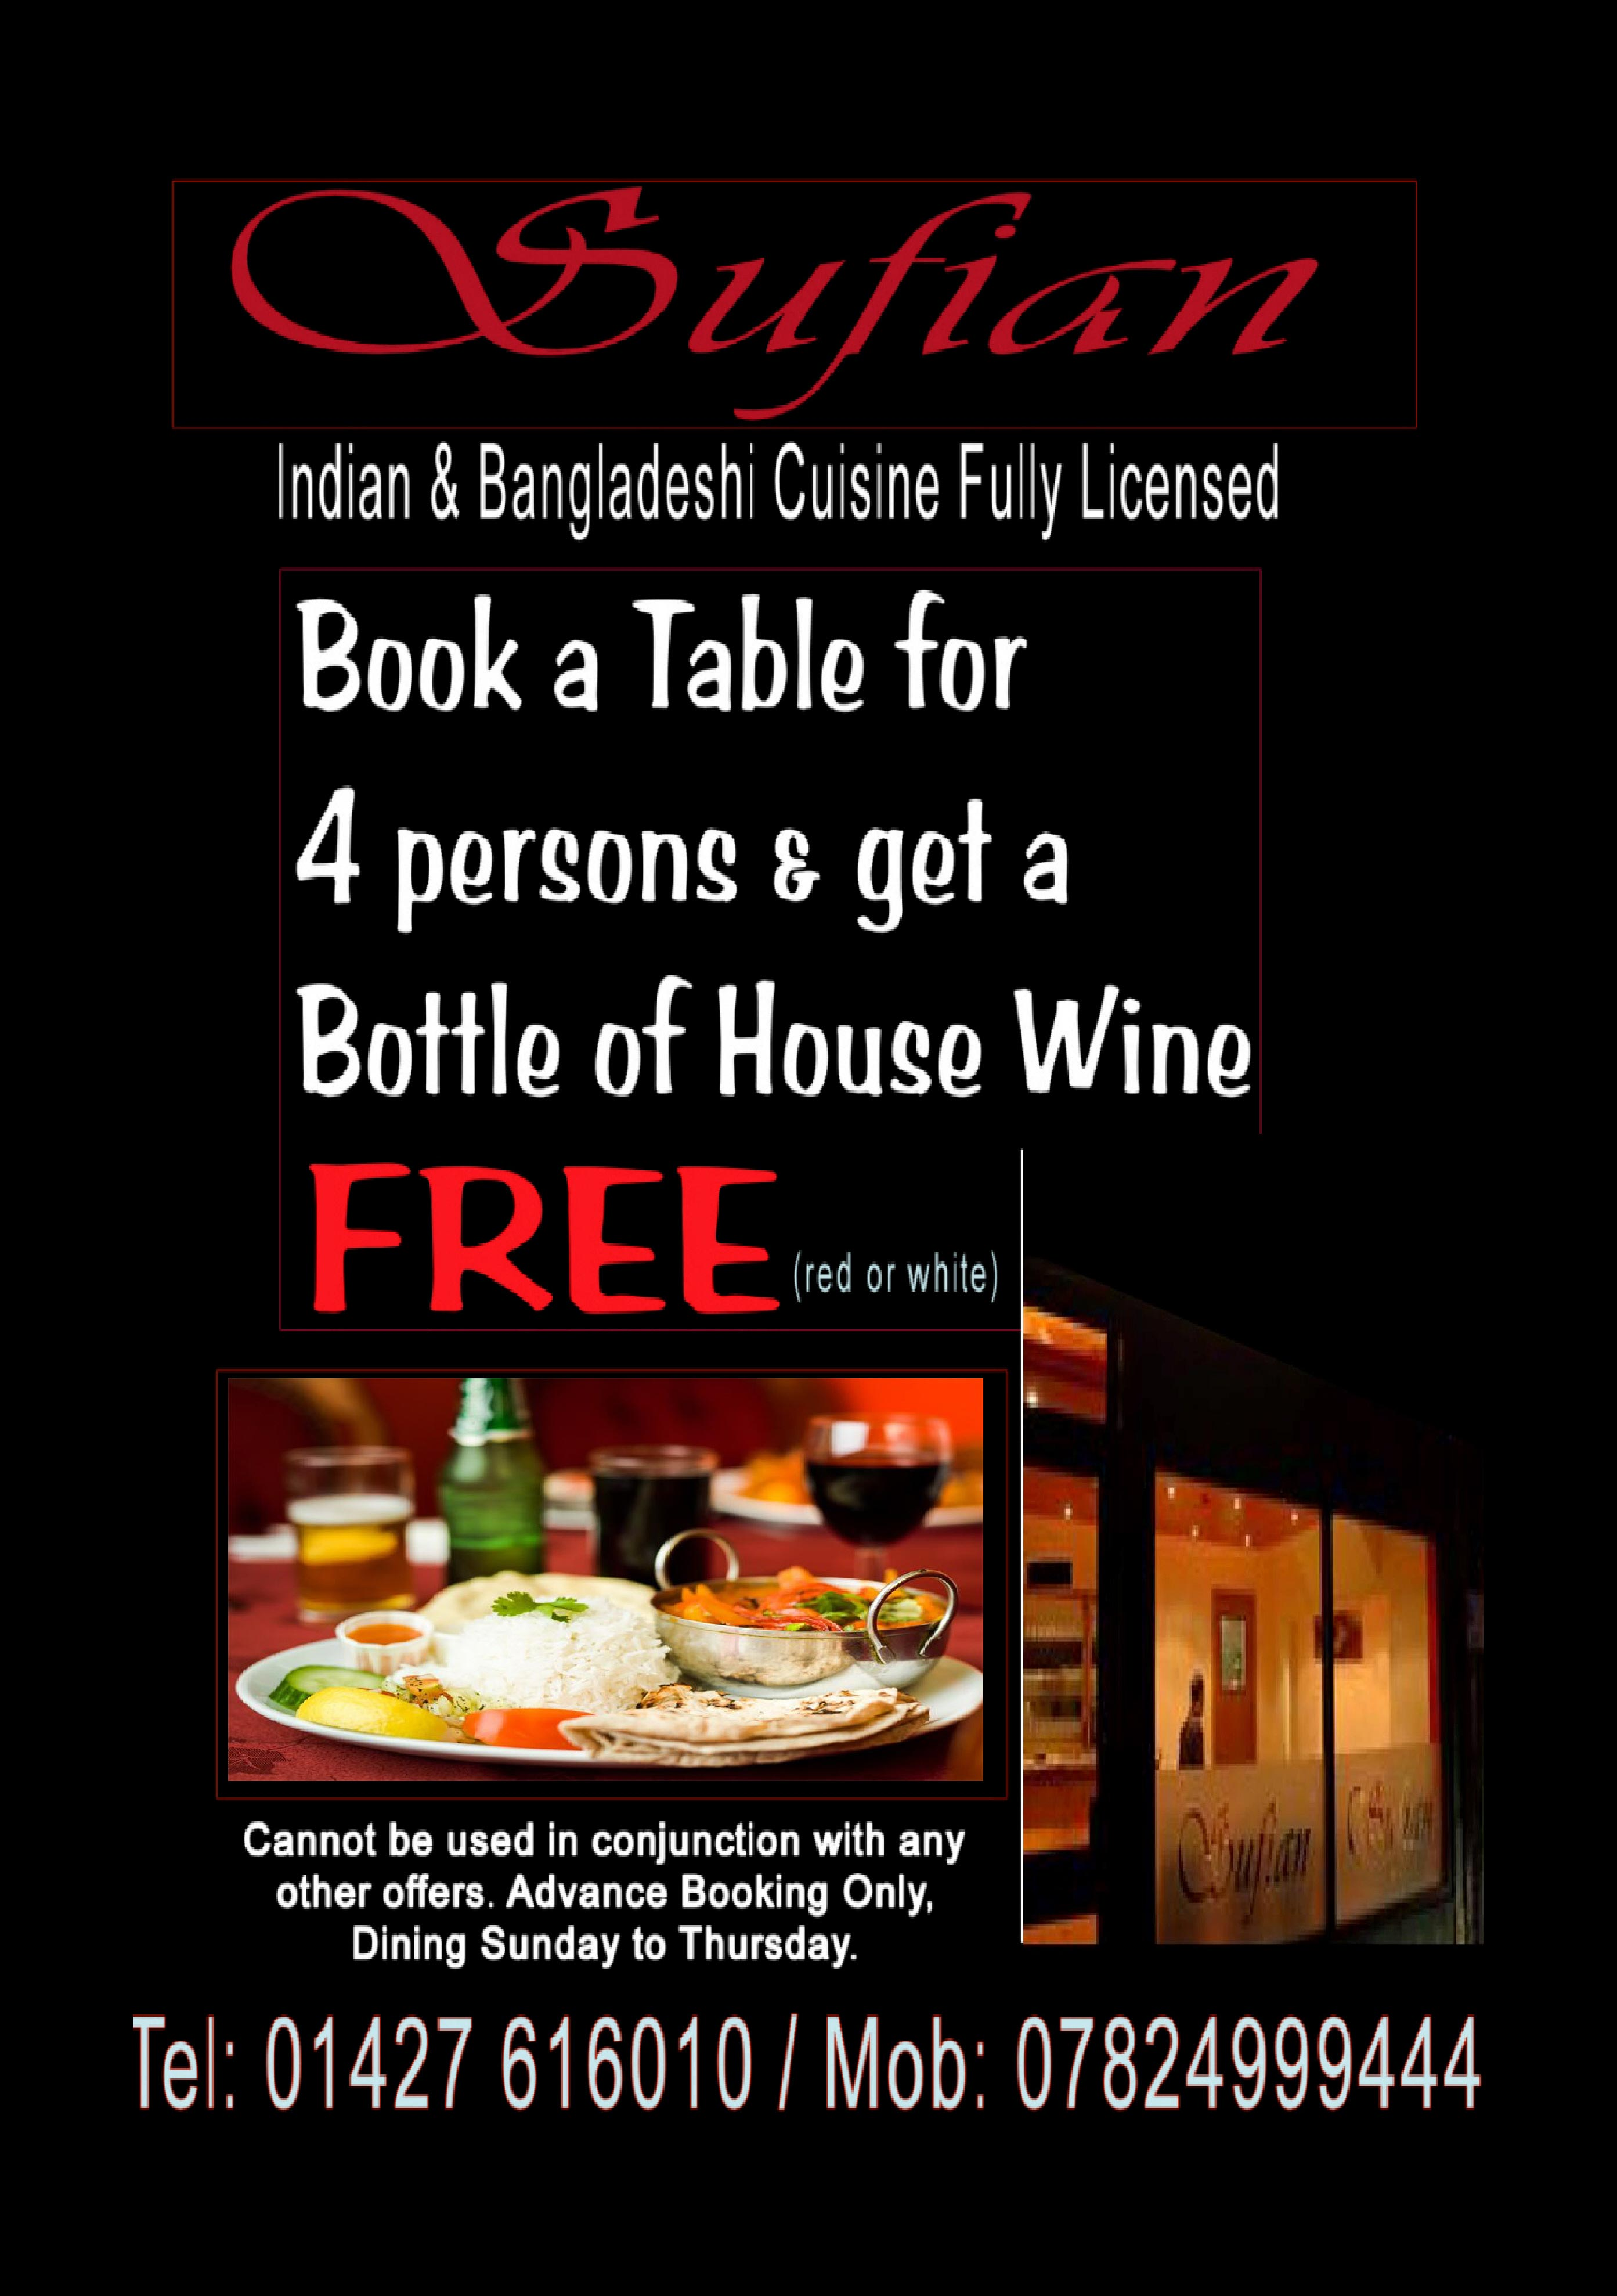 House wine offer at Sufian Cuisine